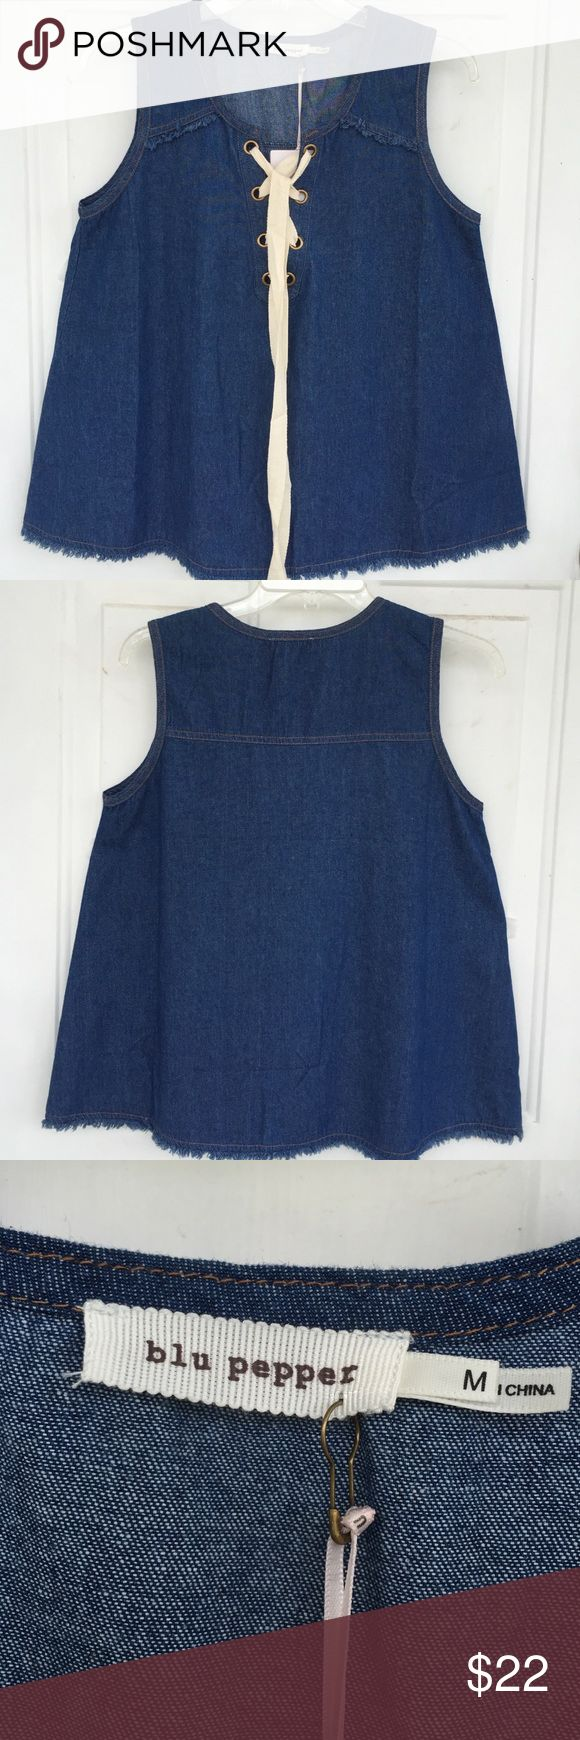 """💙blu pepper top💙 Wonderful, versatile denim top from blu pepper. Features grommet front with lace up tie and fringe detail on shoulders and hem. Size medium, measuring 18"""" pit-pit and 24"""" long. Purchased from Buckle. Never worn. Blu Pepper Tops Tunics"""